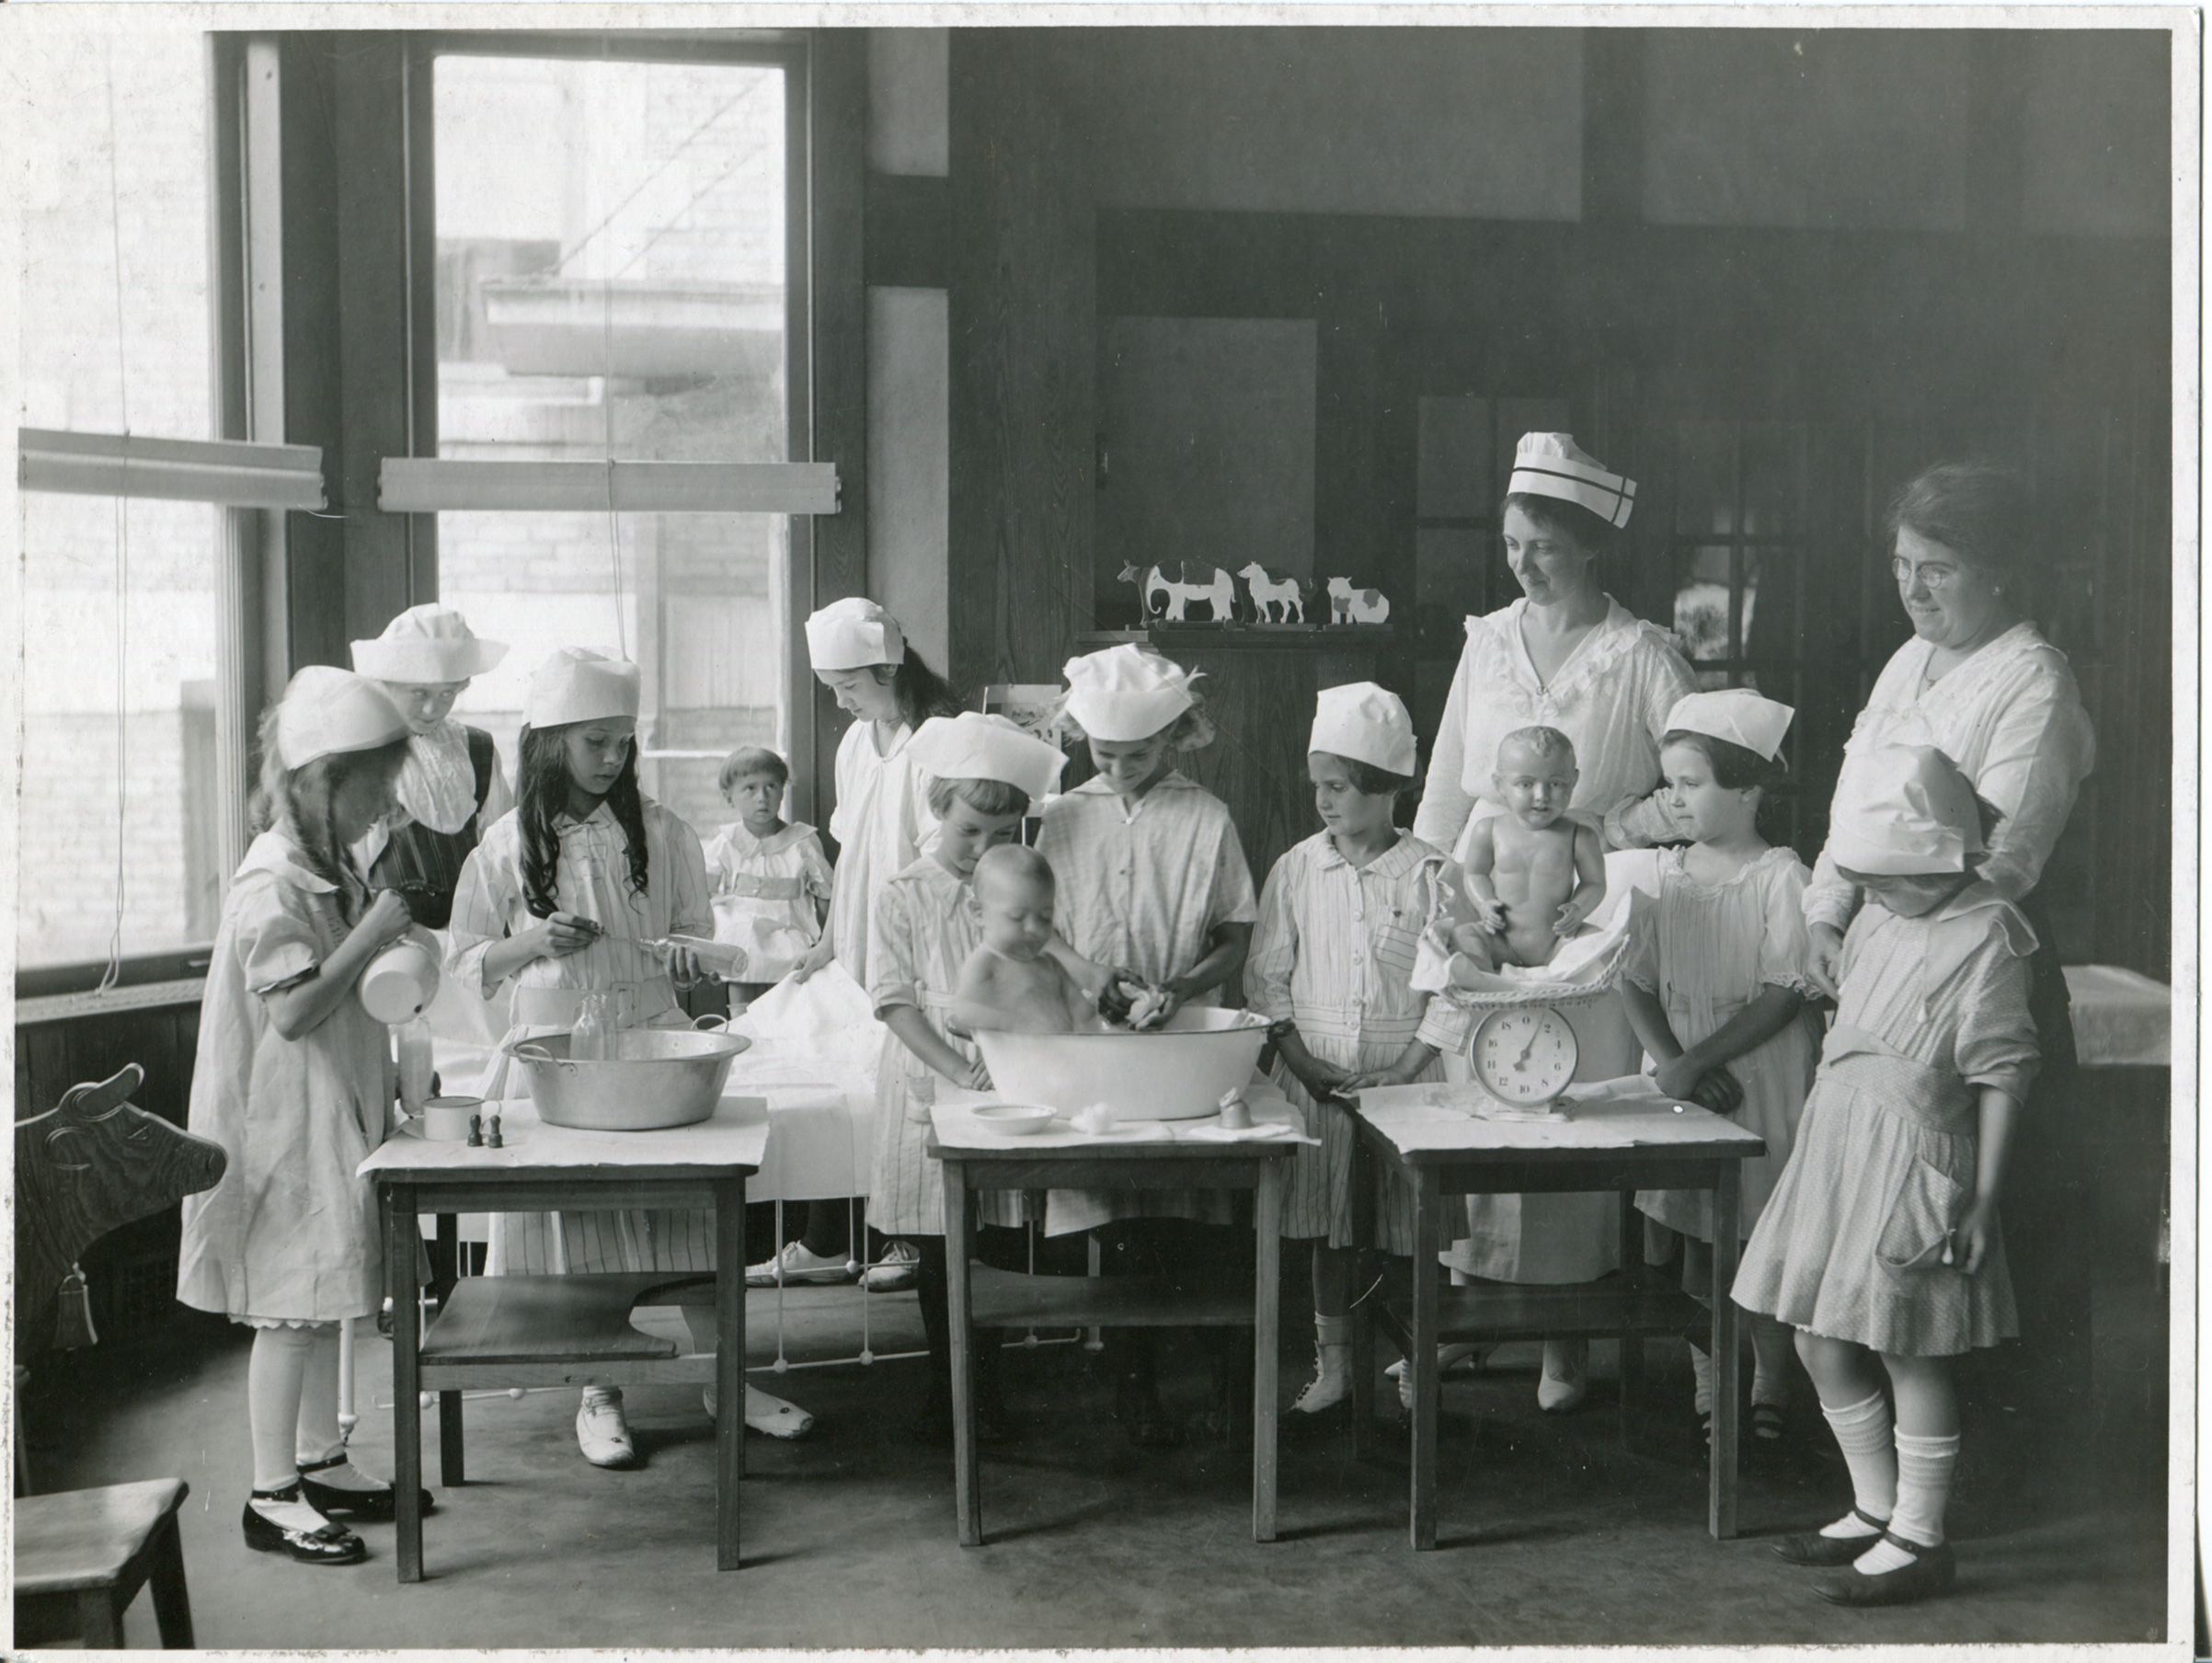 The Little Mothers League of New York State, circa 1940. Founded in 1908, the Little Mothers Leagues were part of a larger focus in public health aimed at reducing an infant mortality rate that hovered at 30% in poor urban communities. Many of those deaths could be linked young children in these families who were charged with the care of their infant siblings while their mothers' worked.